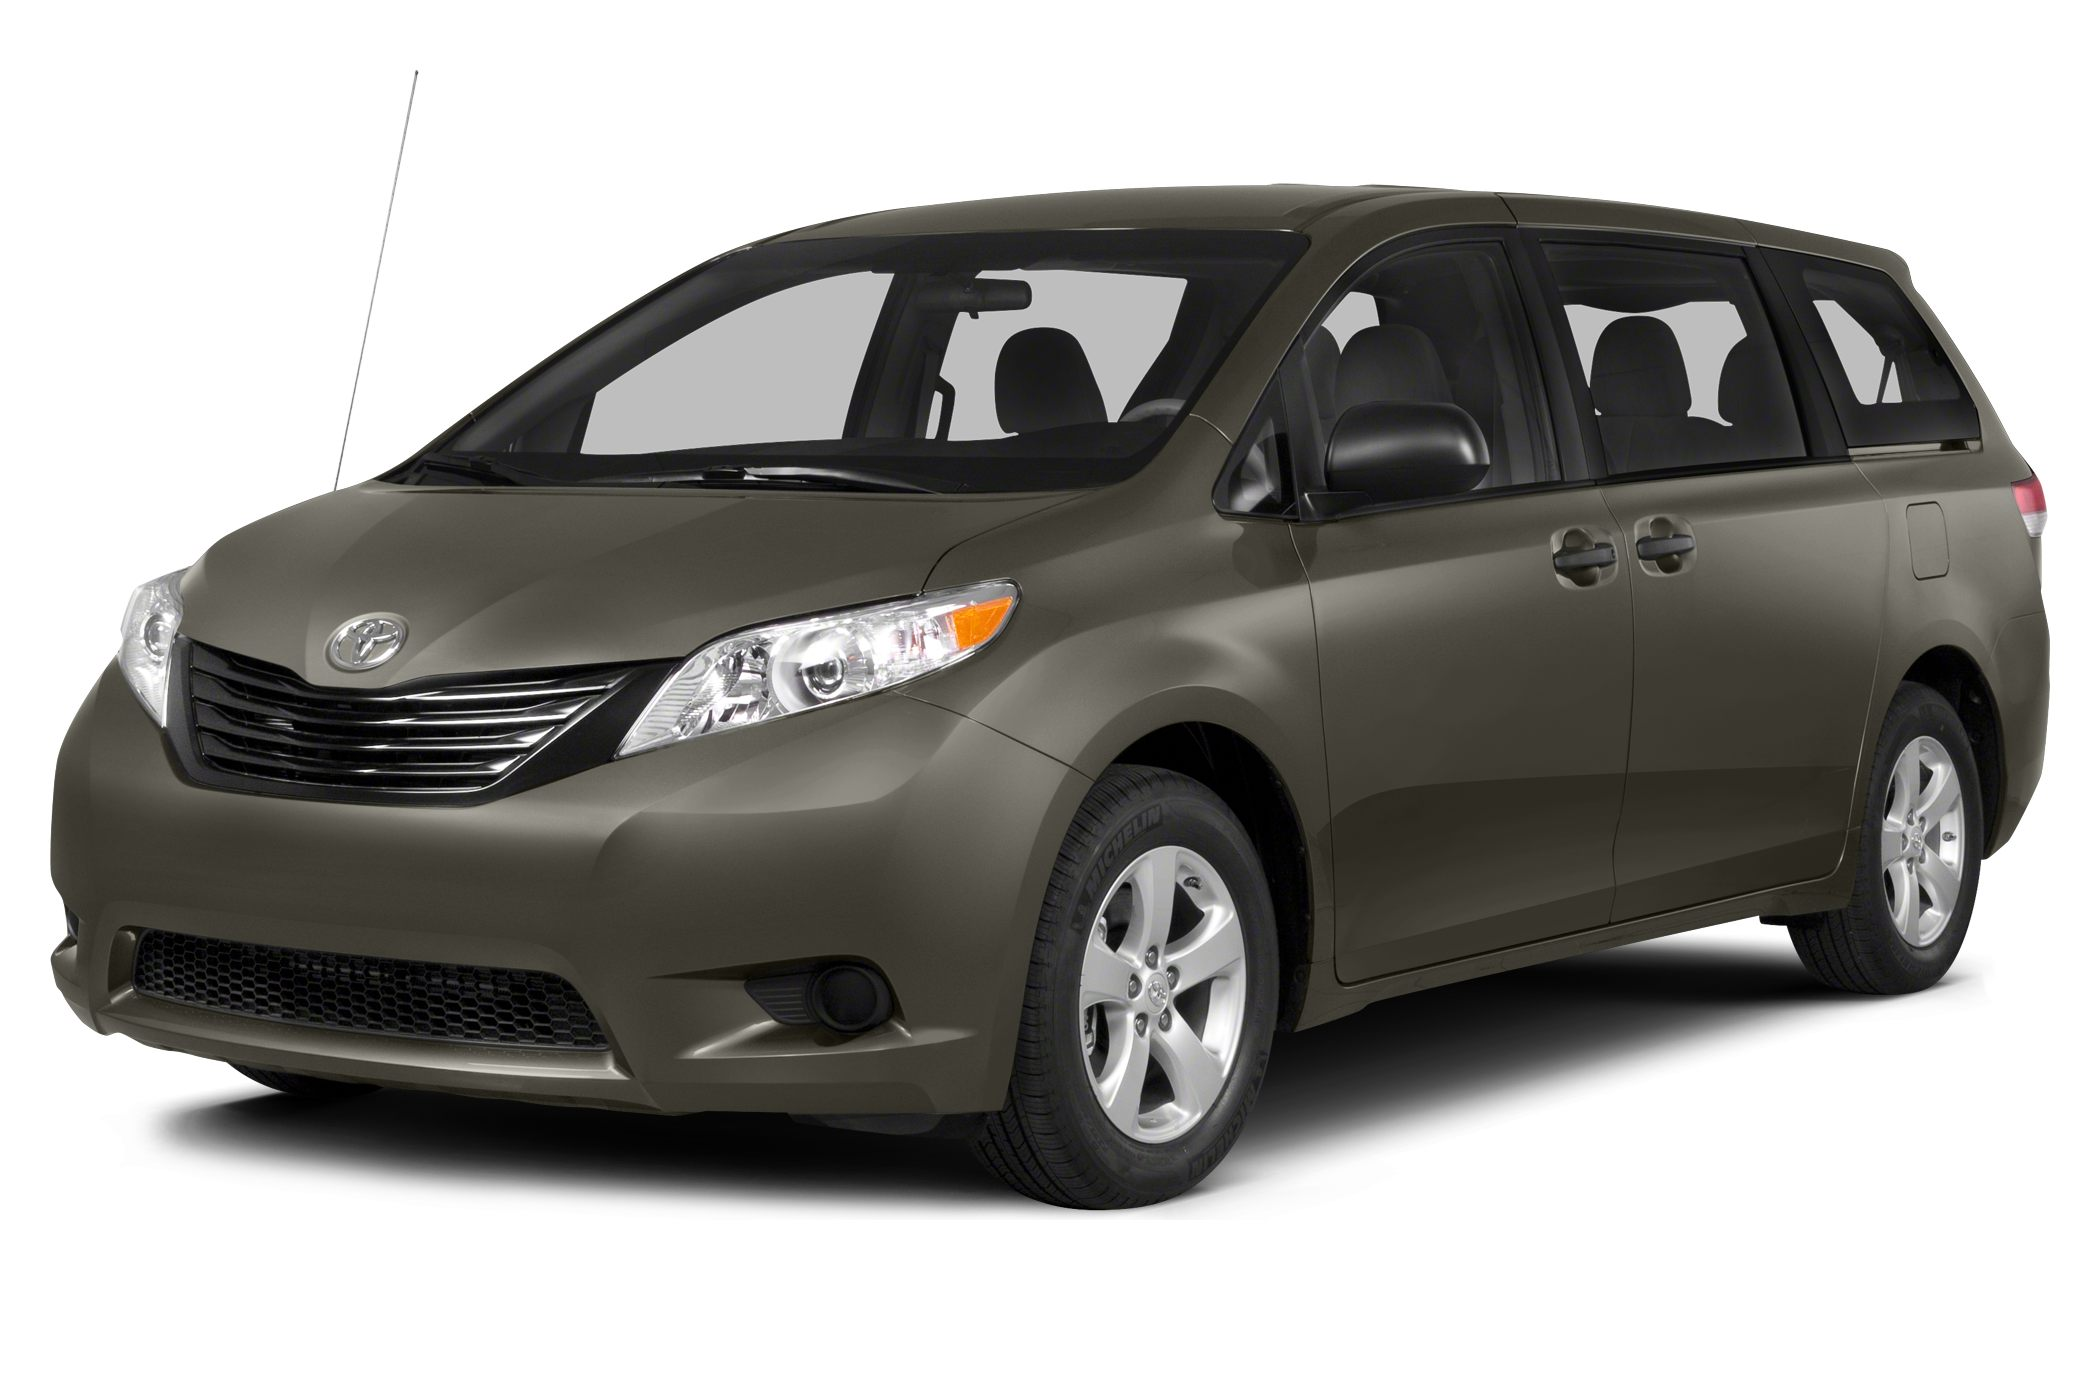 2014 Toyota Sienna SE Minivan for sale in New York for $34,300 with 0 miles